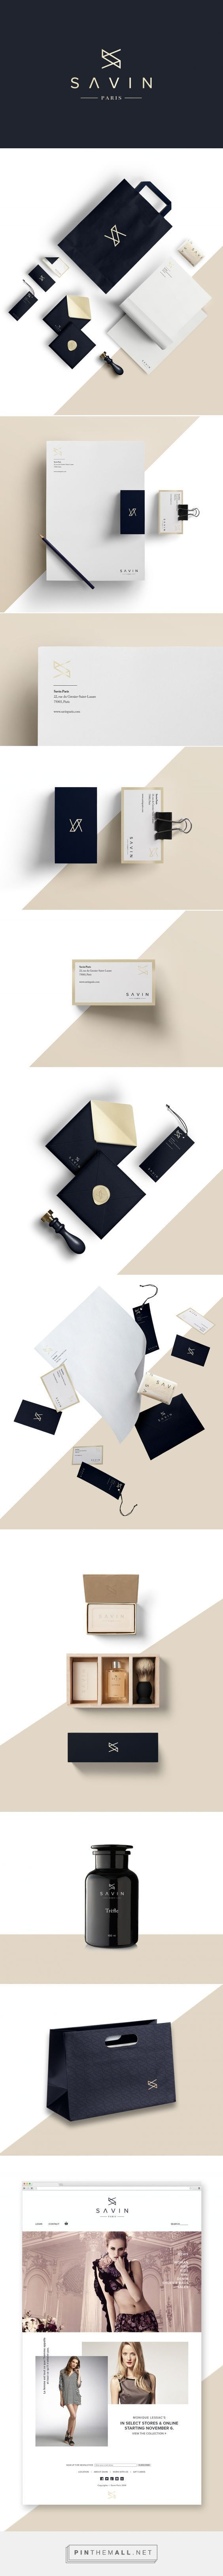 Paris - fashion apparel on Behance - branding stationary corporate identity visual design label business card letterhead bag packaging website enveloppe logo minimalistic graphic design: